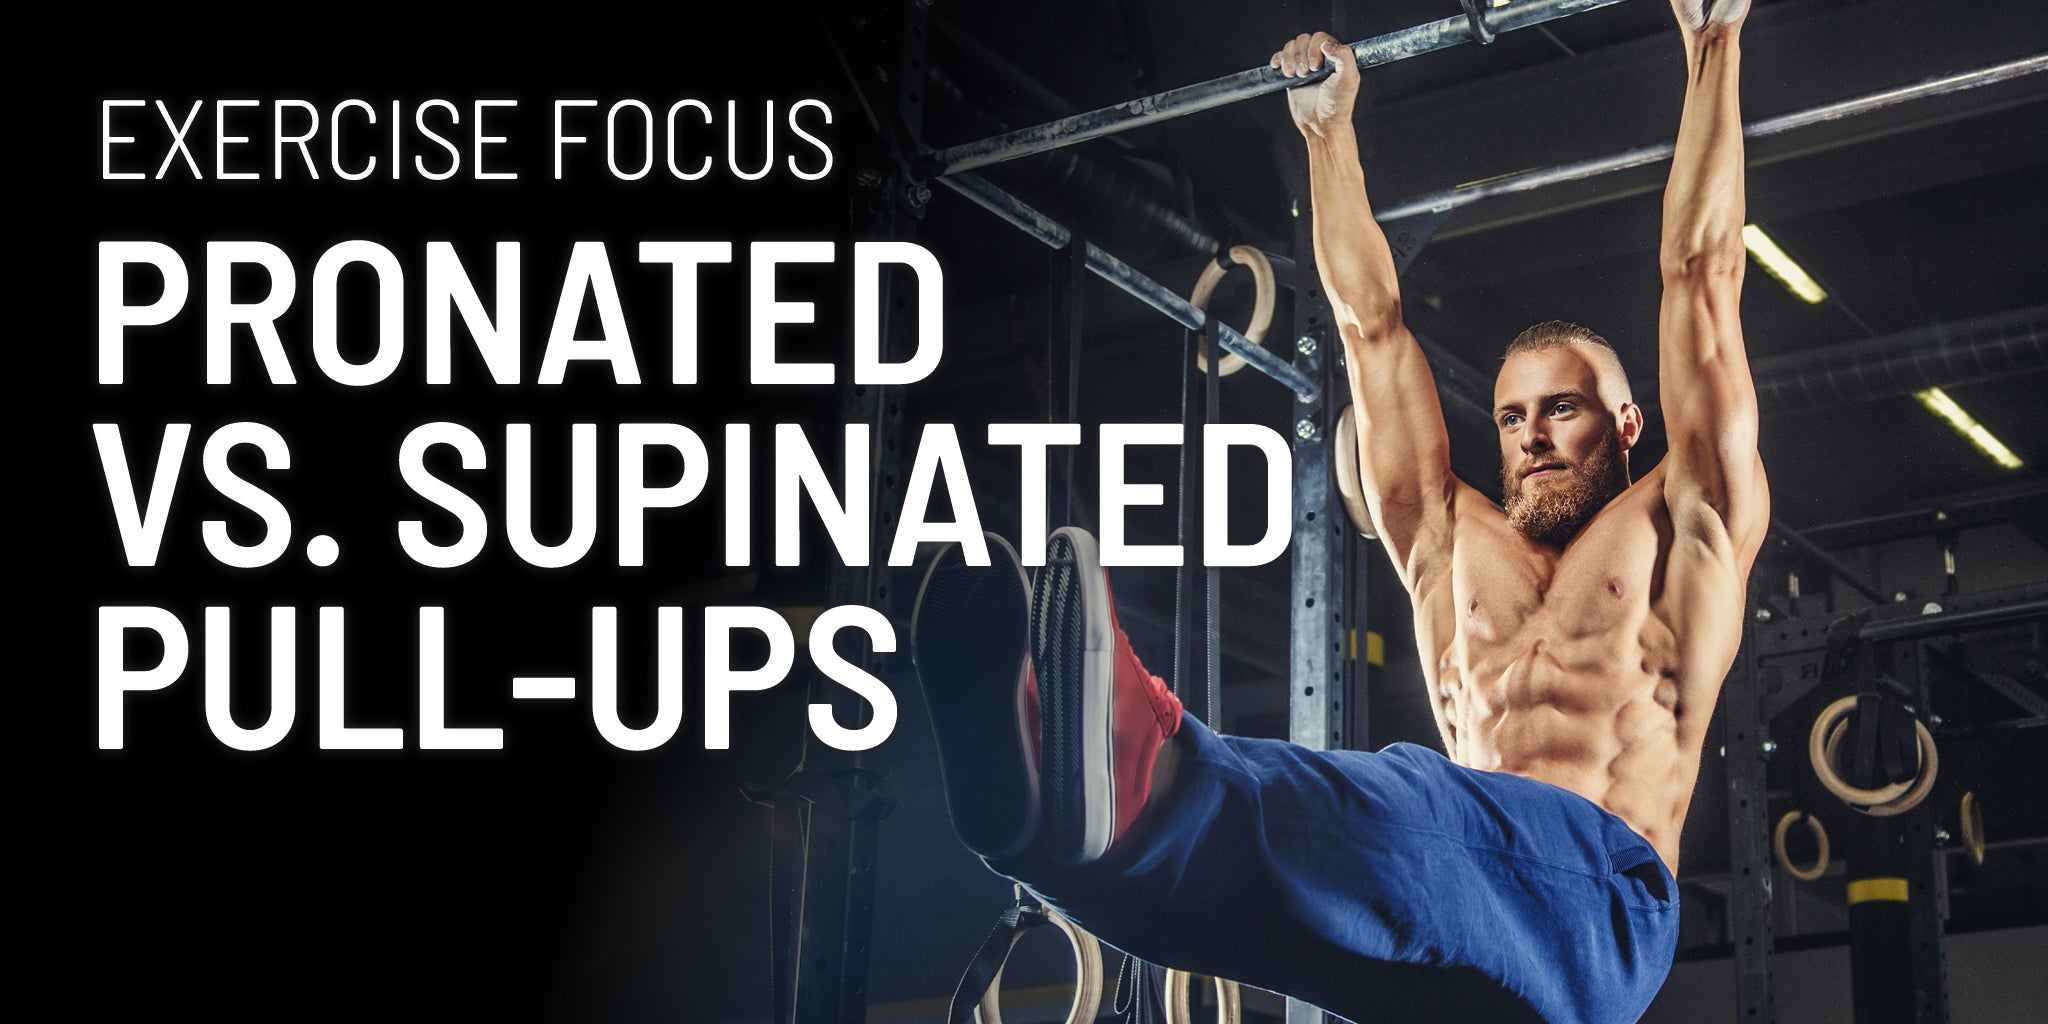 Exercise Focus - Pronated Vs. Supinated Pull-Ups